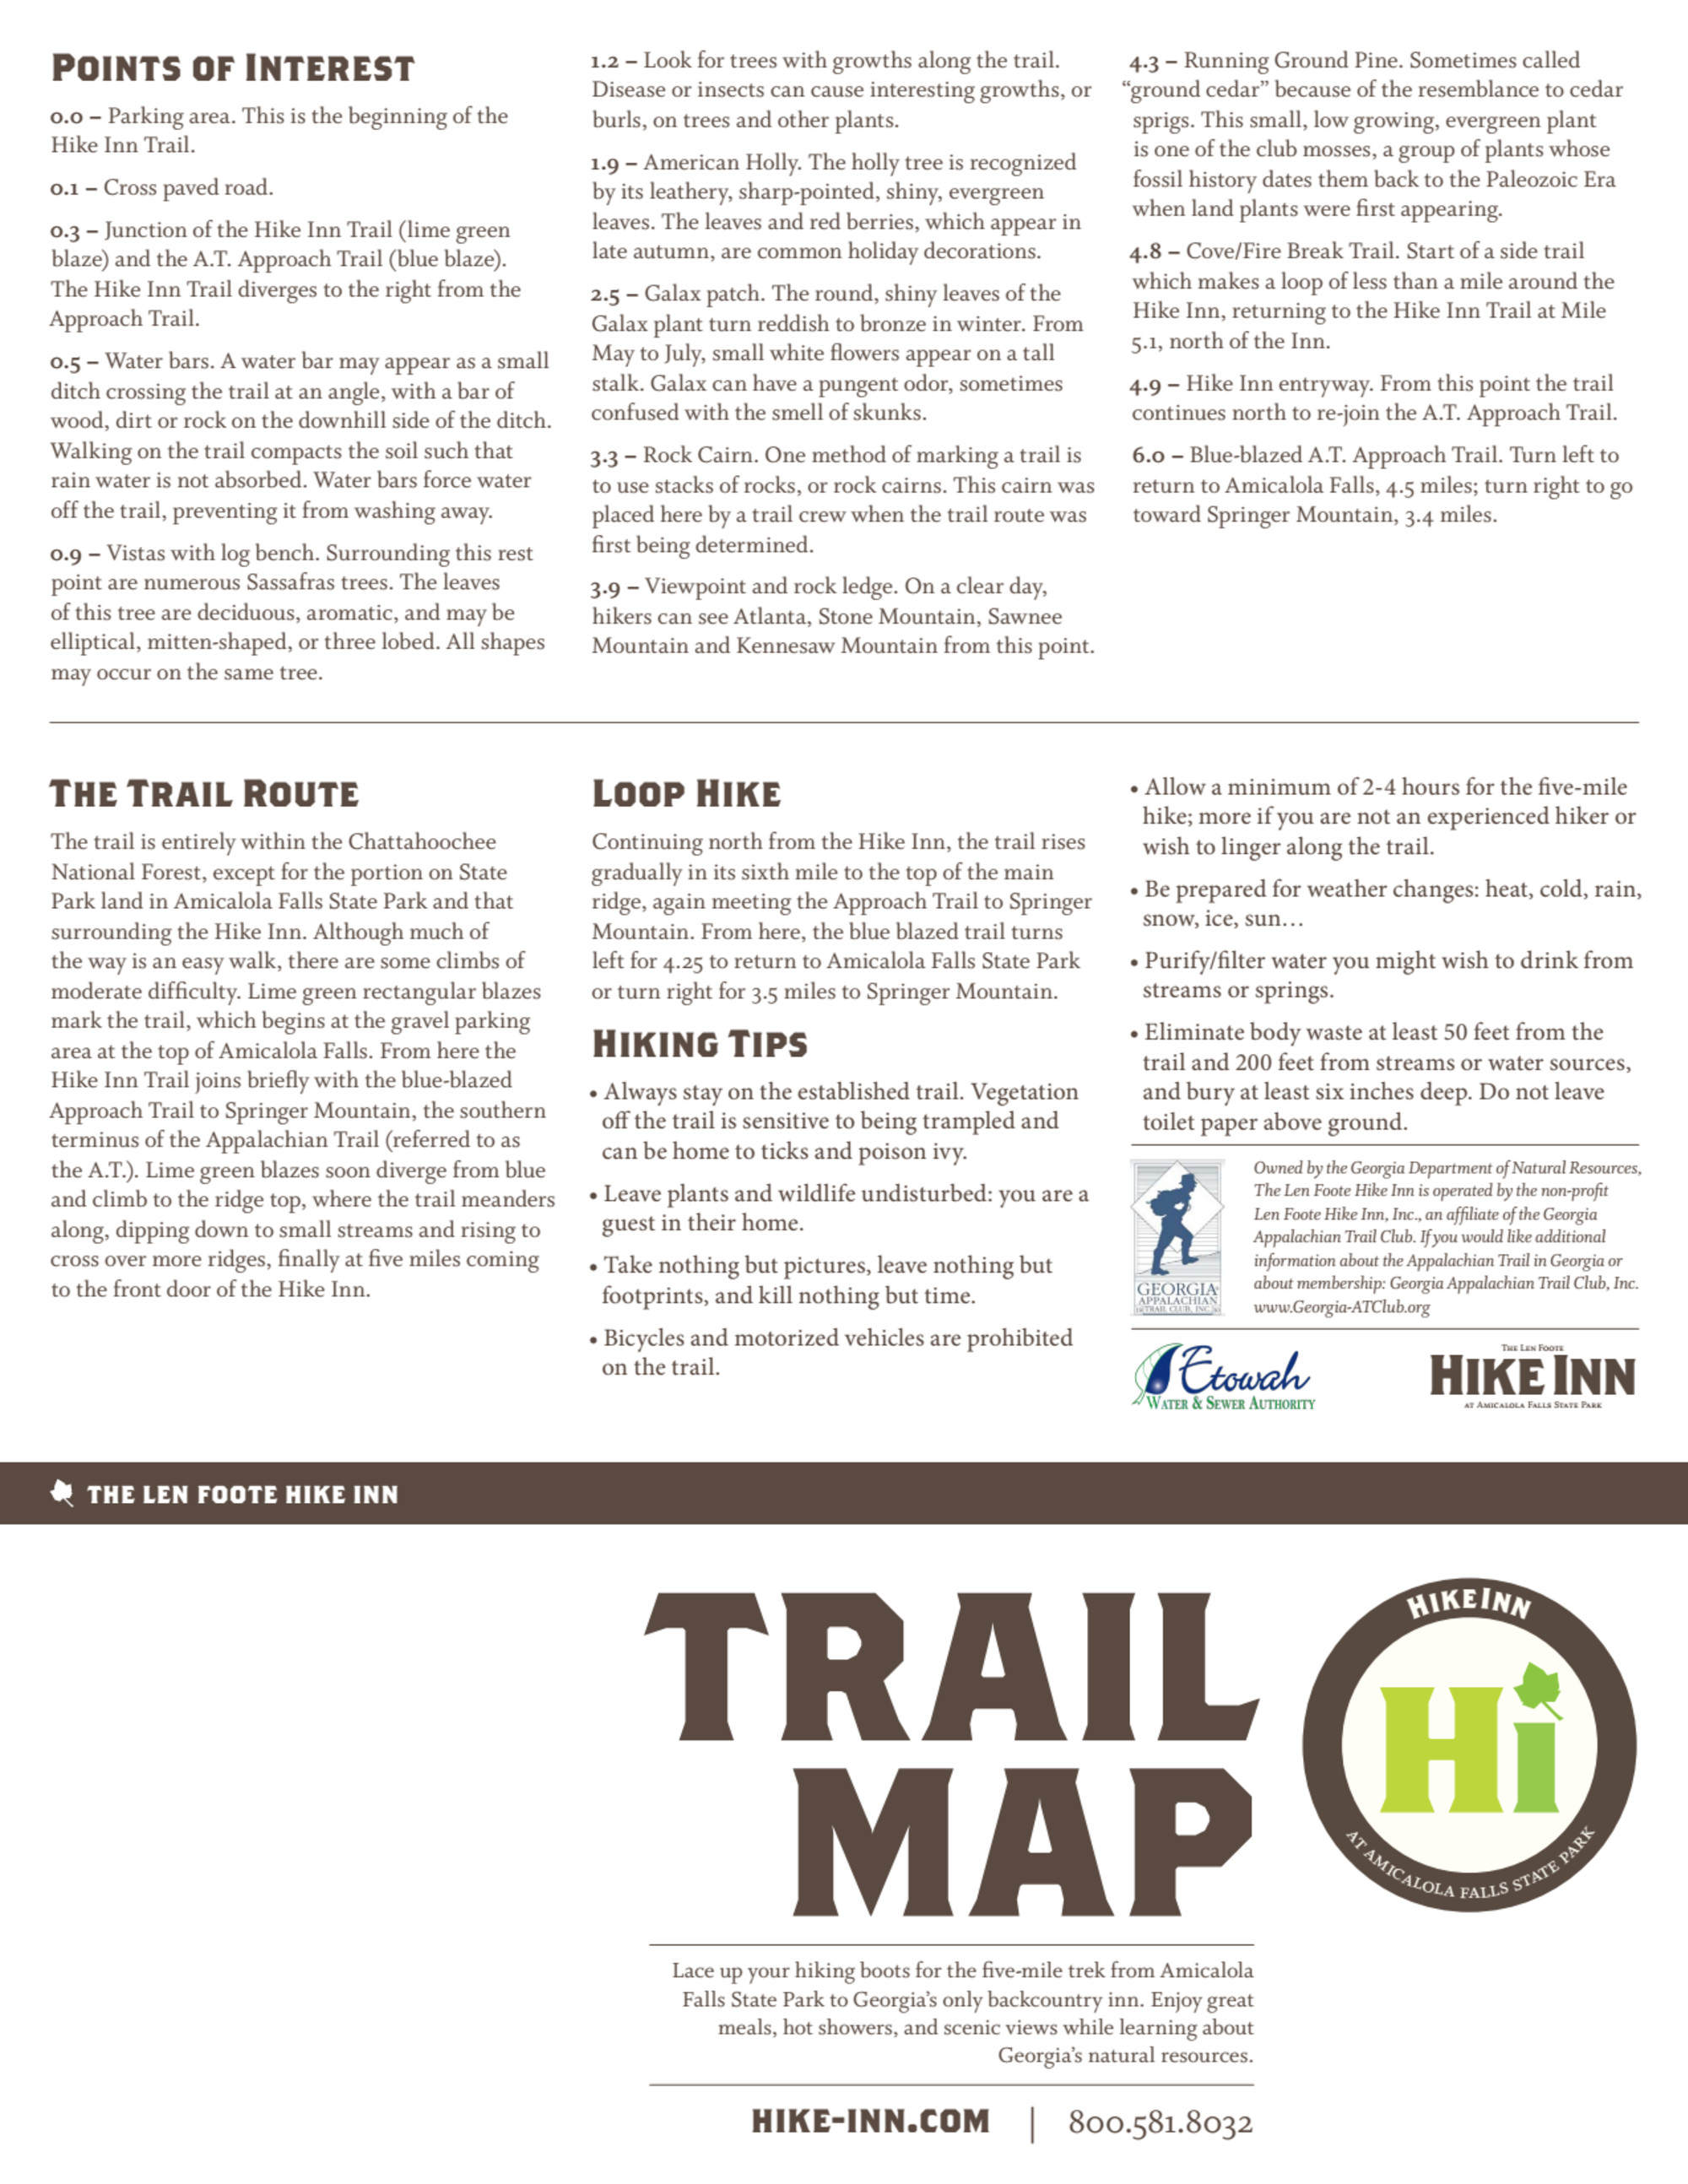 Hike Inn Trail Map